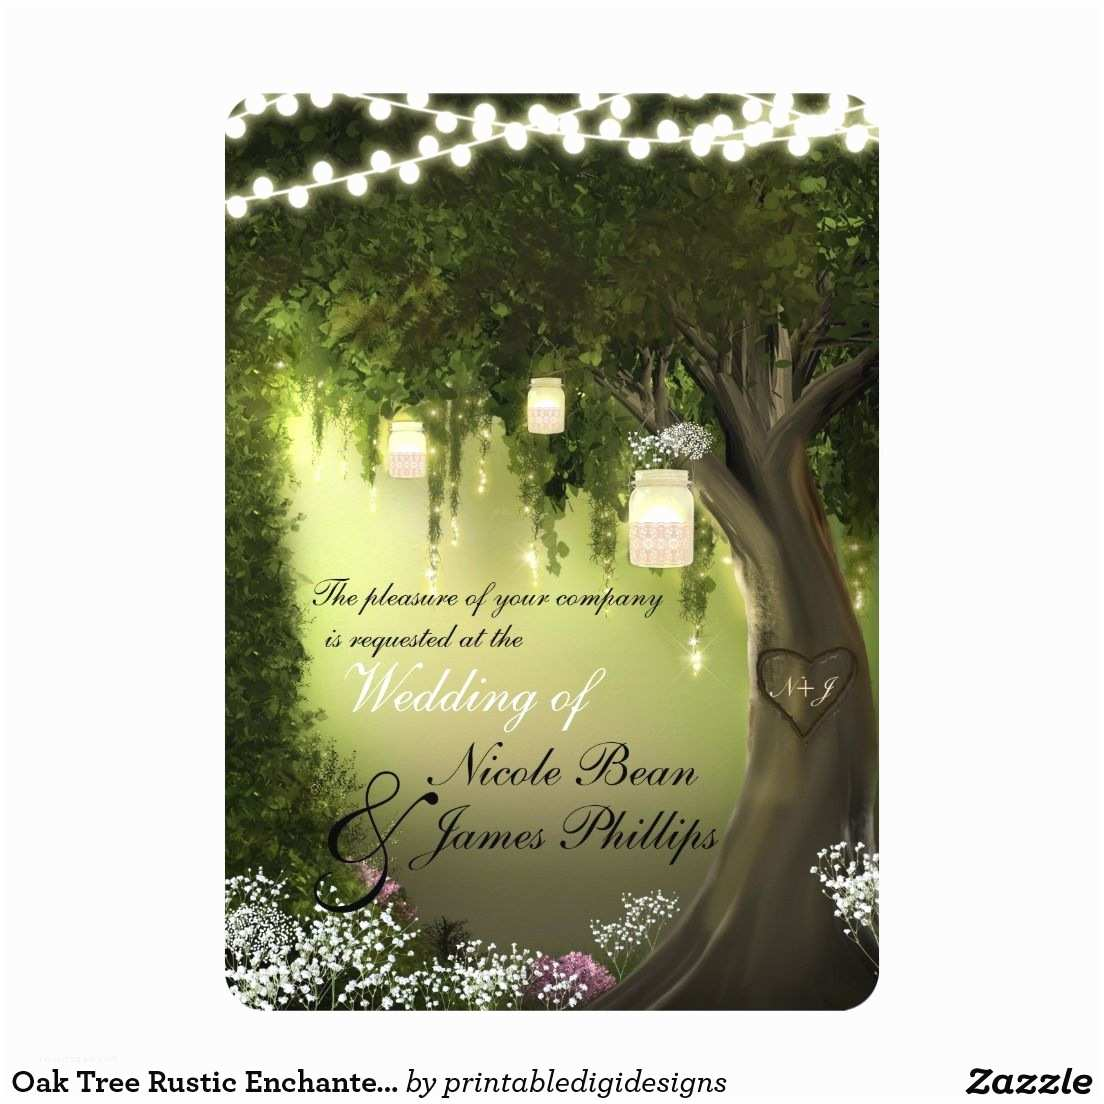 Enchanted forest themed Wedding Invitations Oak Tree Rustic Enchanted forest Garden Invitation